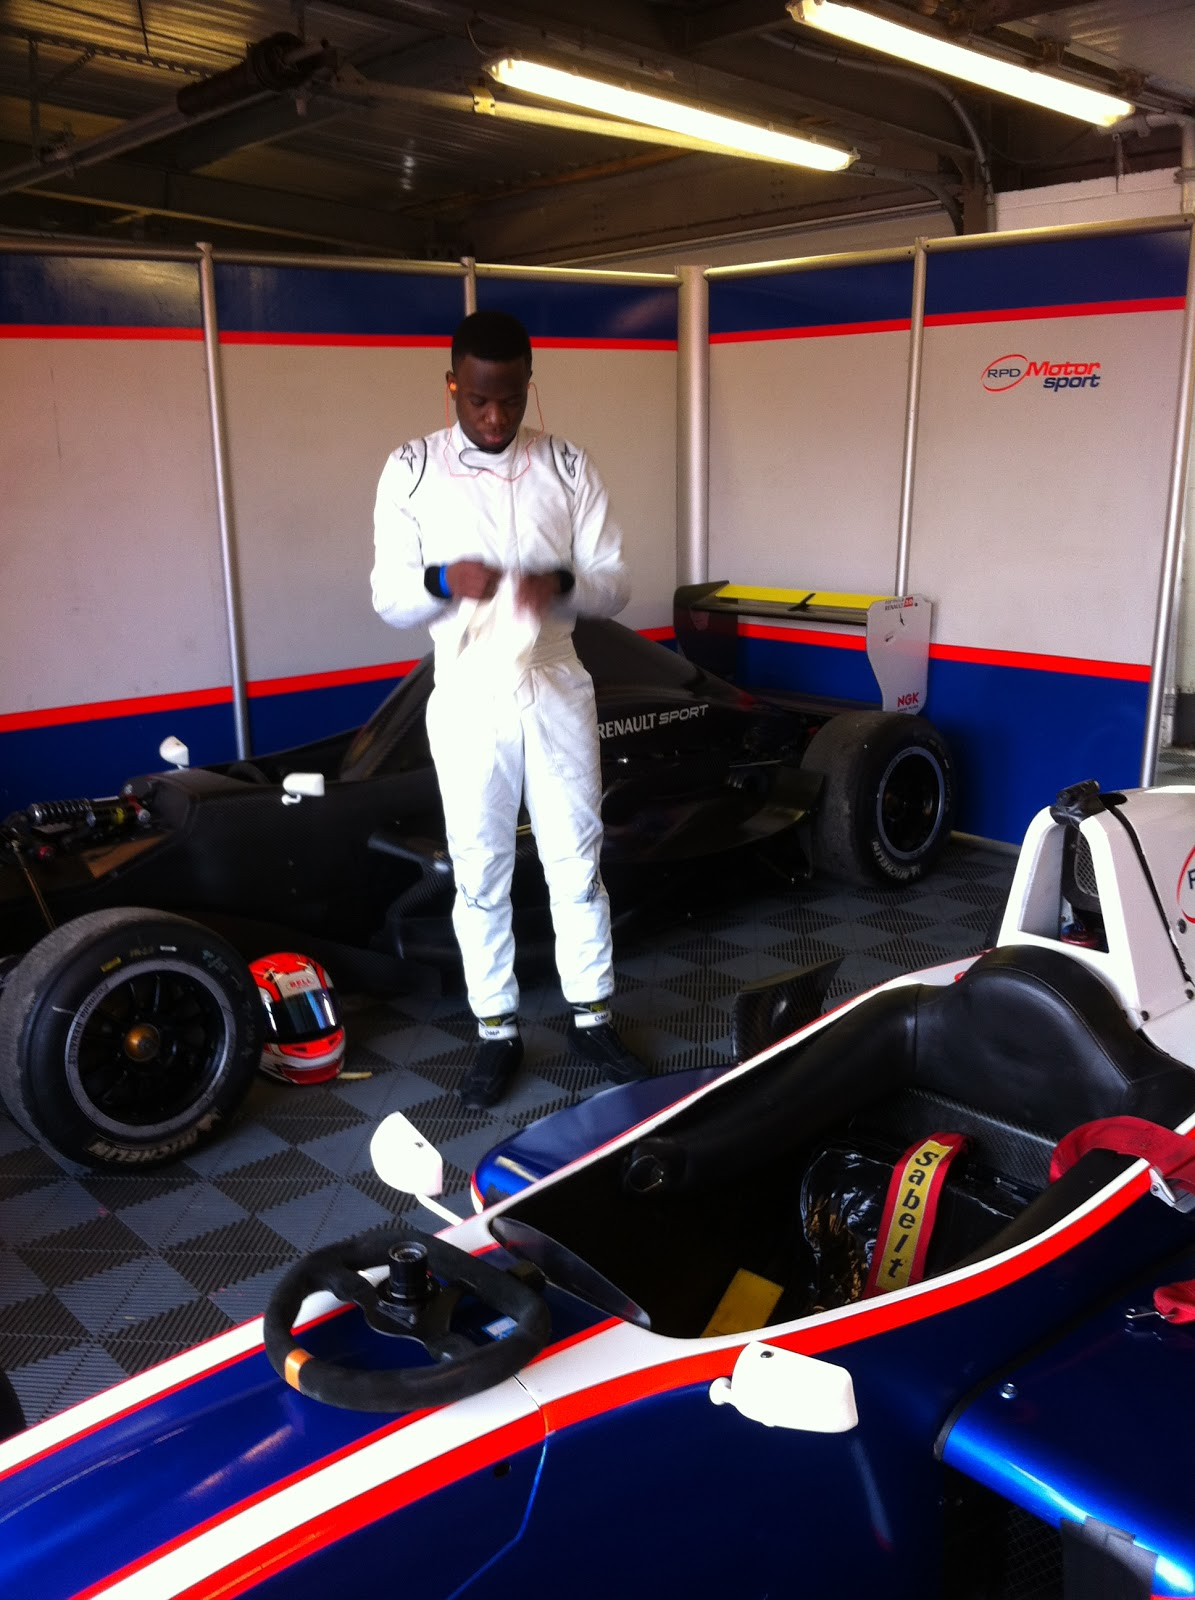 Read more about ovie here http vivacitypr blogspot co uk 2012 03 ovie iroro youngest driver set to drive html